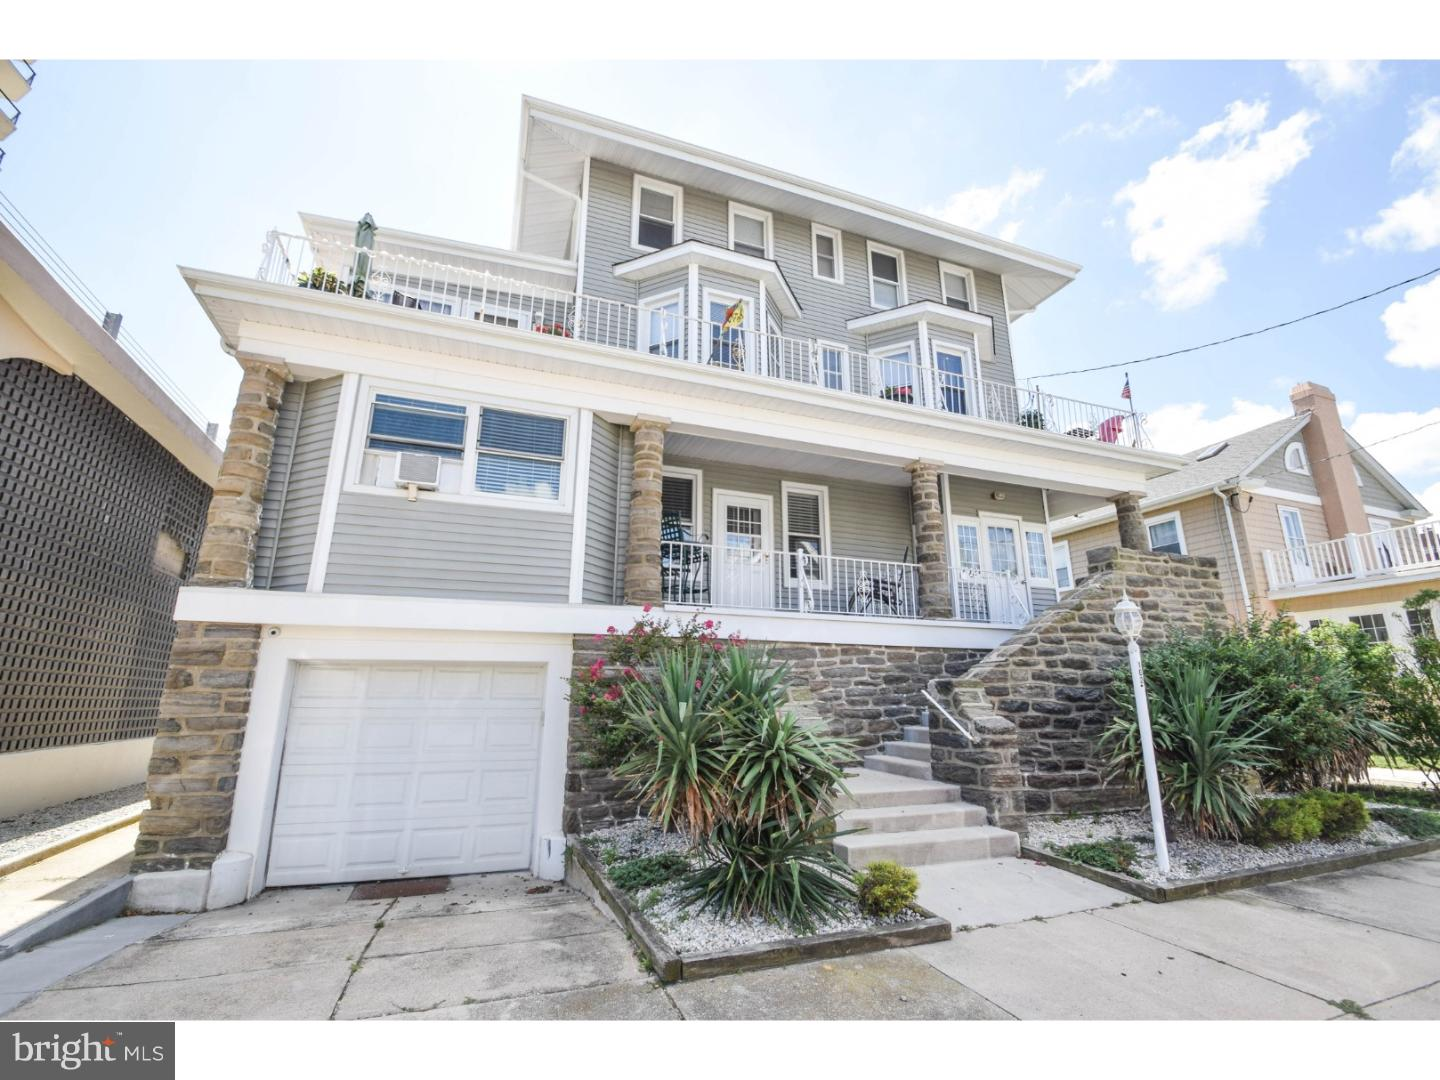 Single Family Home for Sale at Ventnor City, New Jersey 08406 United States